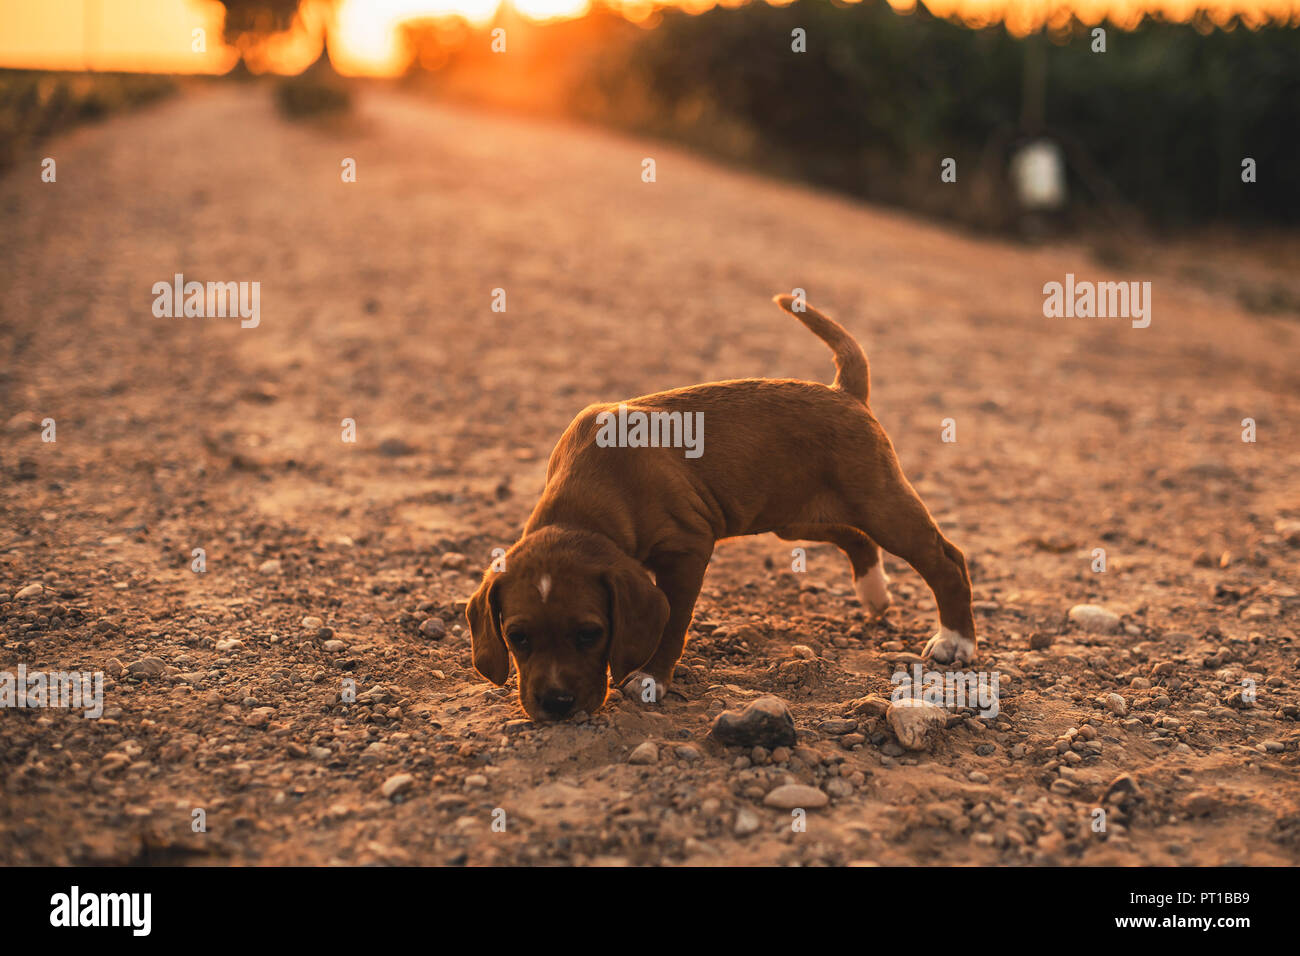 Brown puppy standing on a path smelling something at sunset - Stock Image